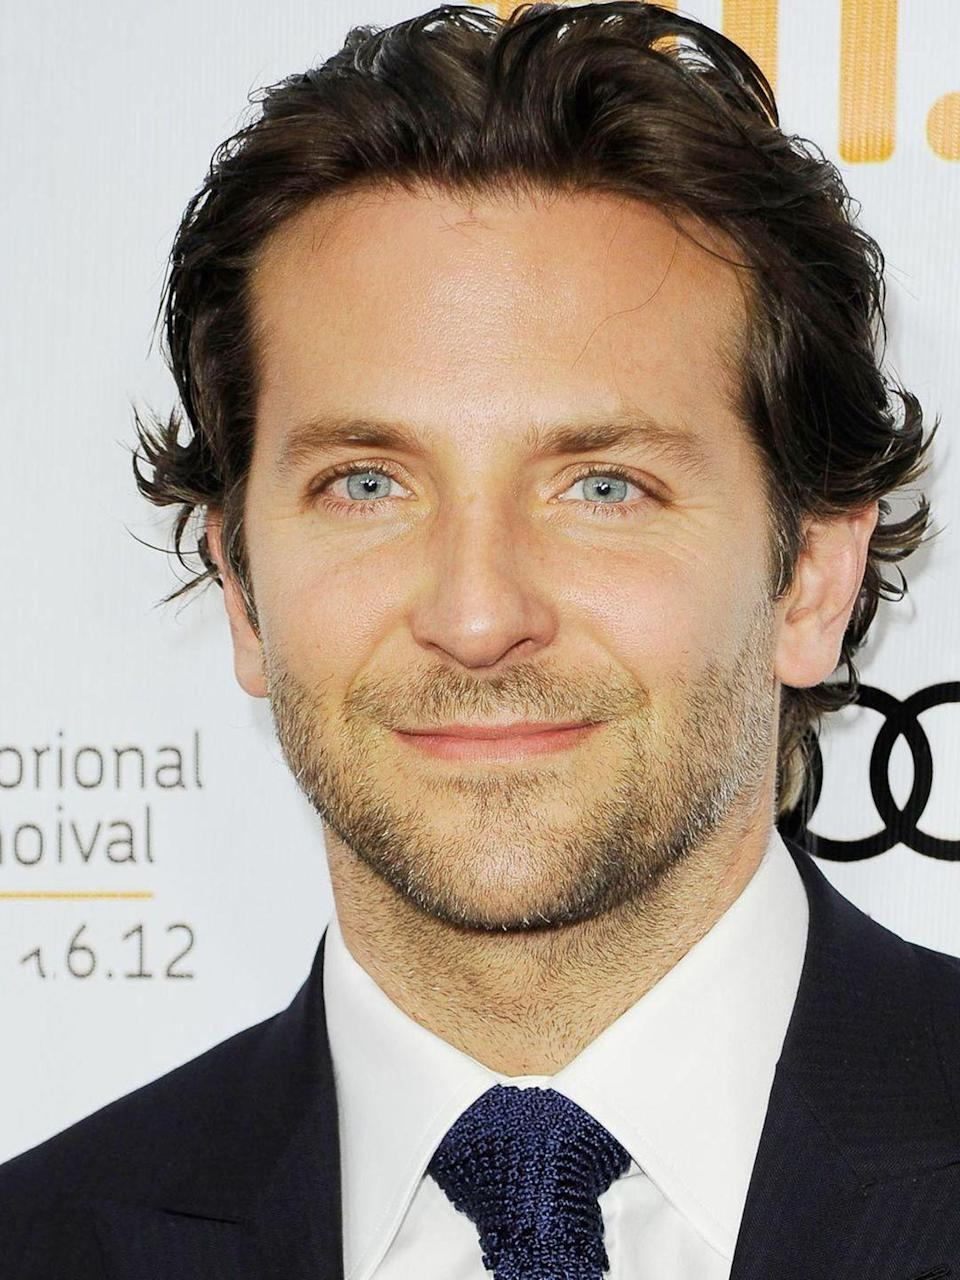 <p>Bradley Cooper, who battled with addiction to alcohol and painkillers, became sober at 29-years-old, and has credited this decision with saving his acting career and allowing him to take care of his father when he was ill. </p><p>Pitt credits Cooper for helping him get sober.</p><p>'I got sober because of this guy, and every day has been happier ever since. I love you and I thank you,' the father-of-six said in his National Board of Review Awards acceptance speech.</p>